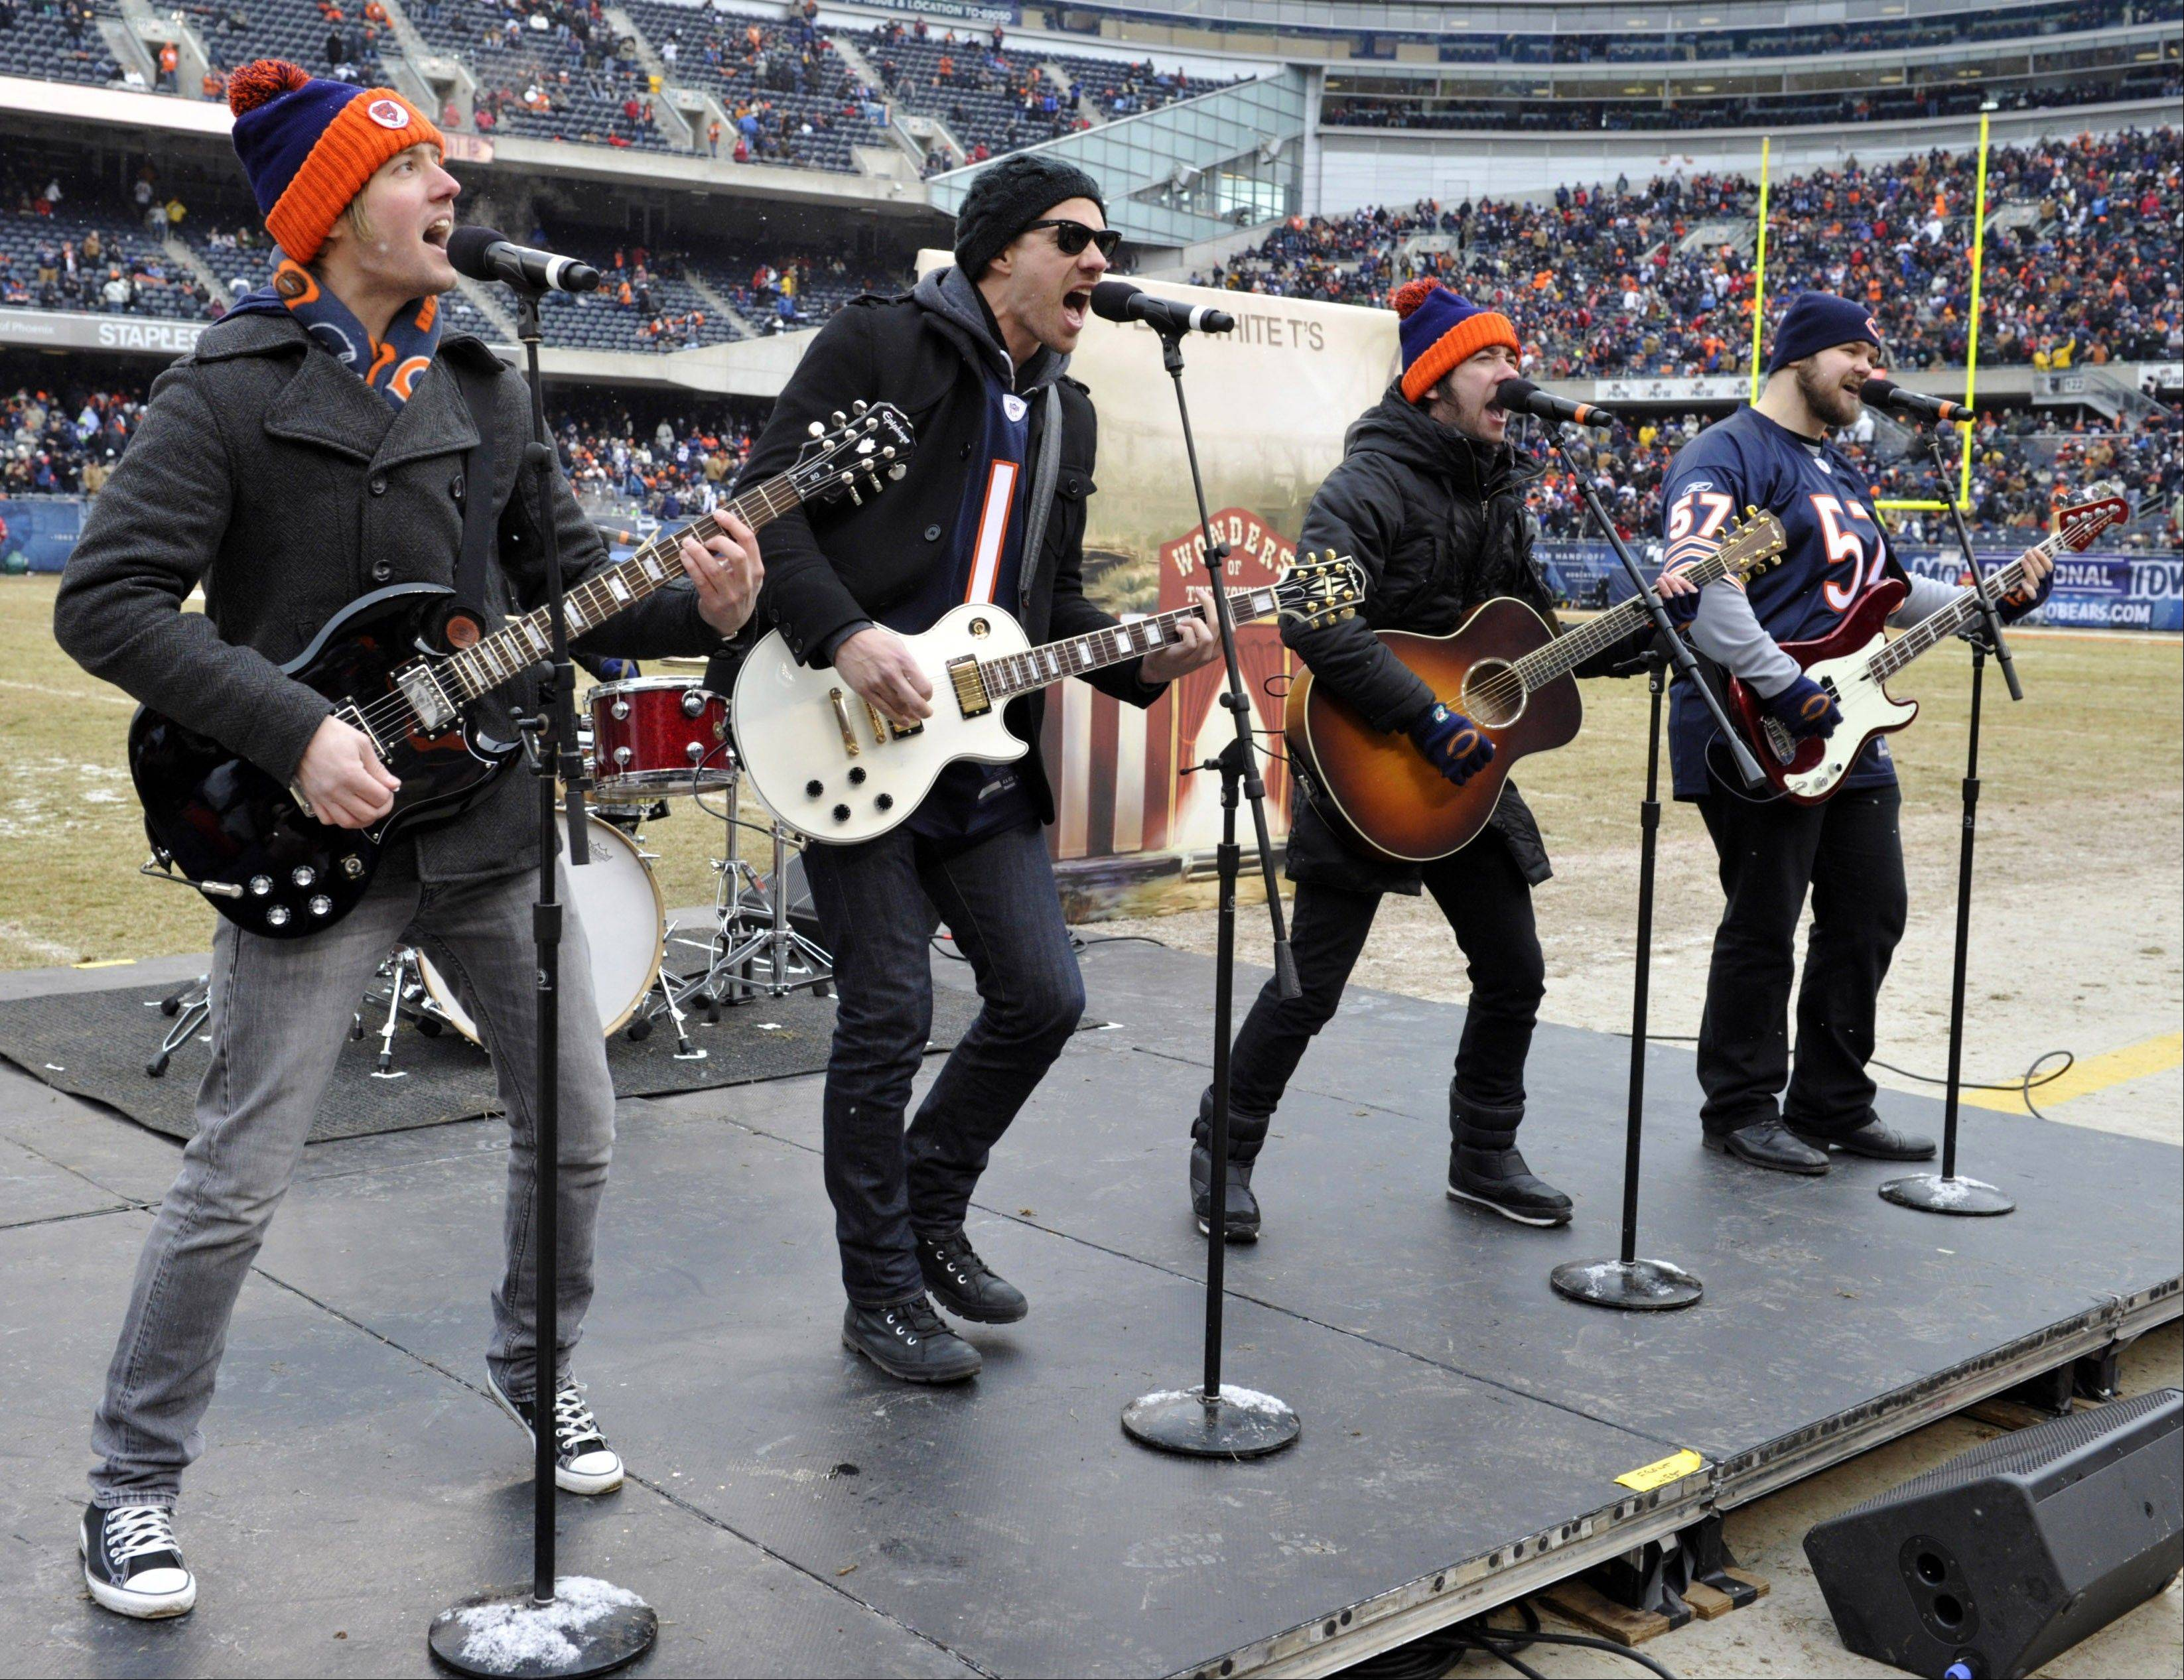 The Plain White T's perform in January 2011 during halftime of a Bears game in Chicago.